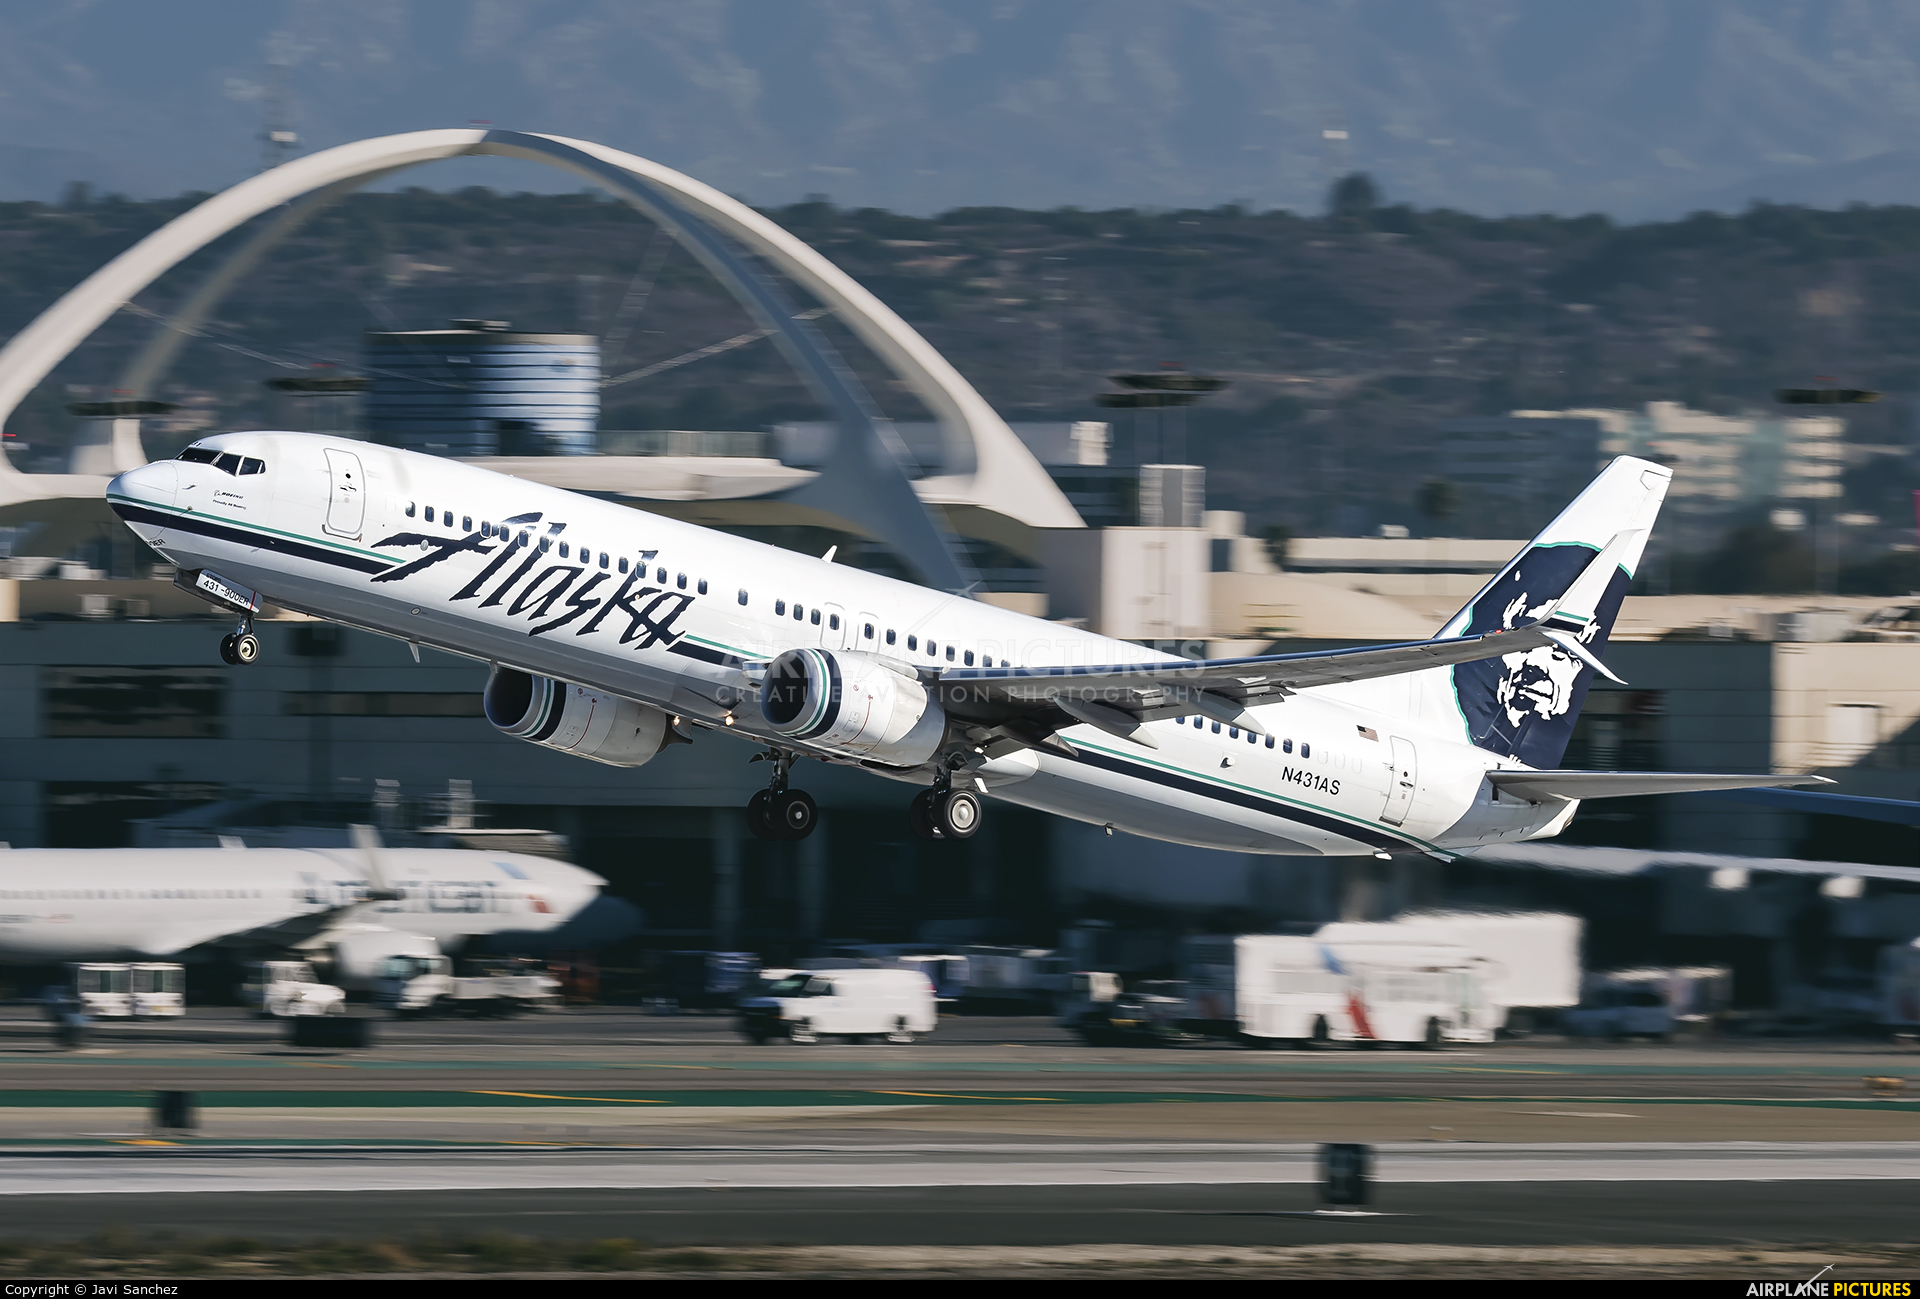 Alaska Airlines N431AS aircraft at Los Angeles Intl